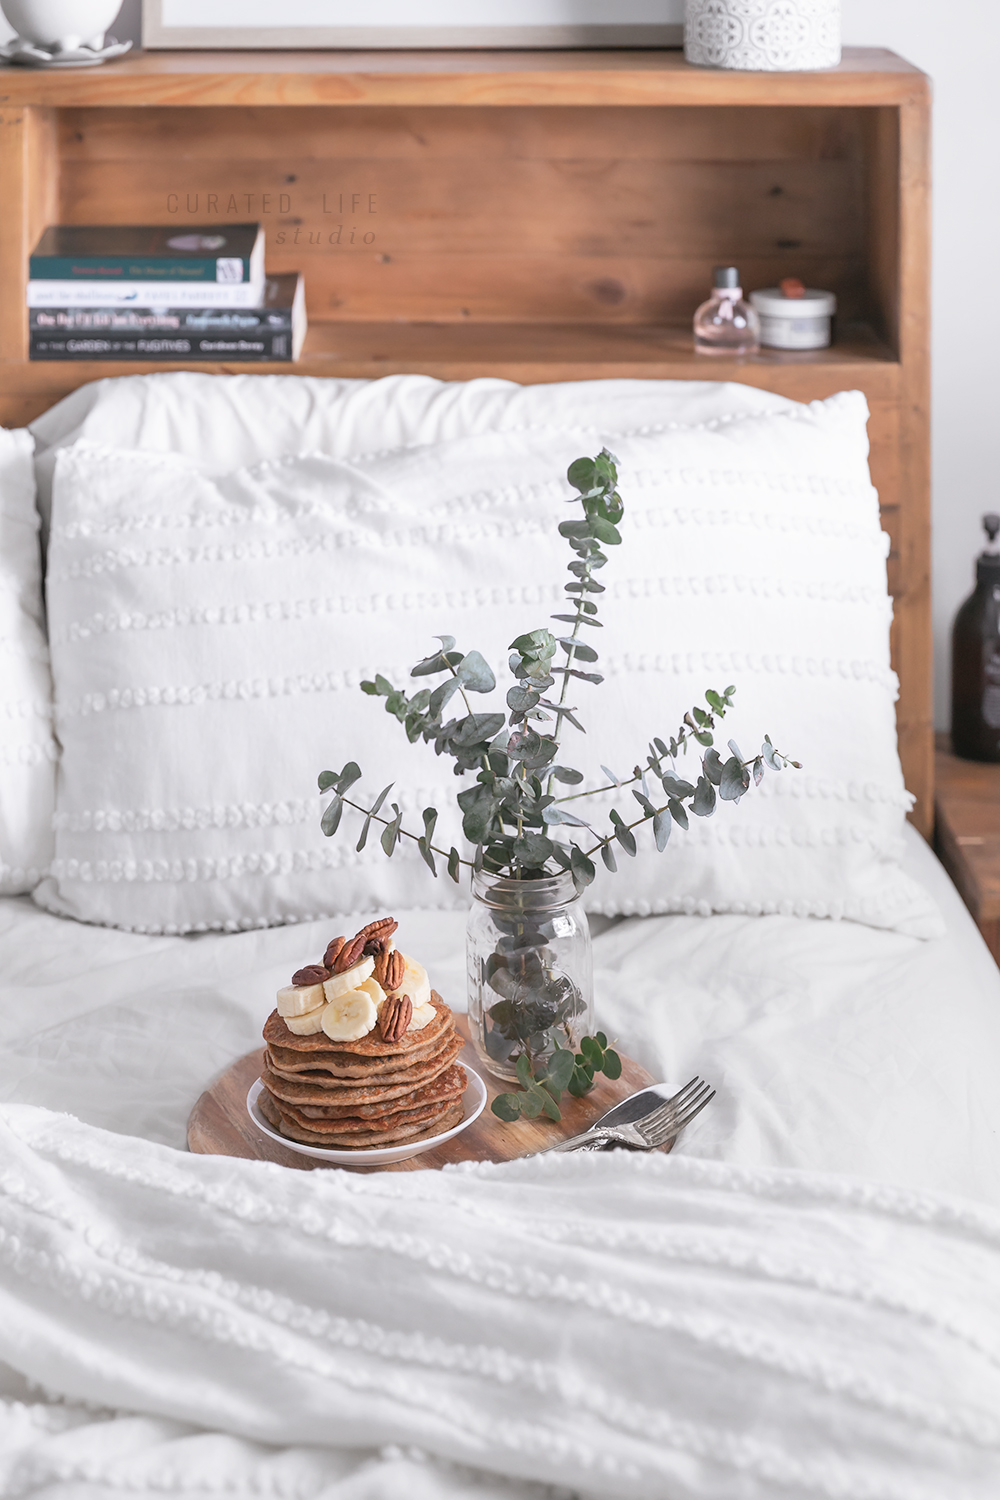 A large wooden rustic bed with shelves with a careful selection of books and perfume. In the middle of the bed is a round wooden tray filled with a stack of gluten-free banana pancakes, silver antique cutlery and a fresh bouquet of eucalyptus leaves.